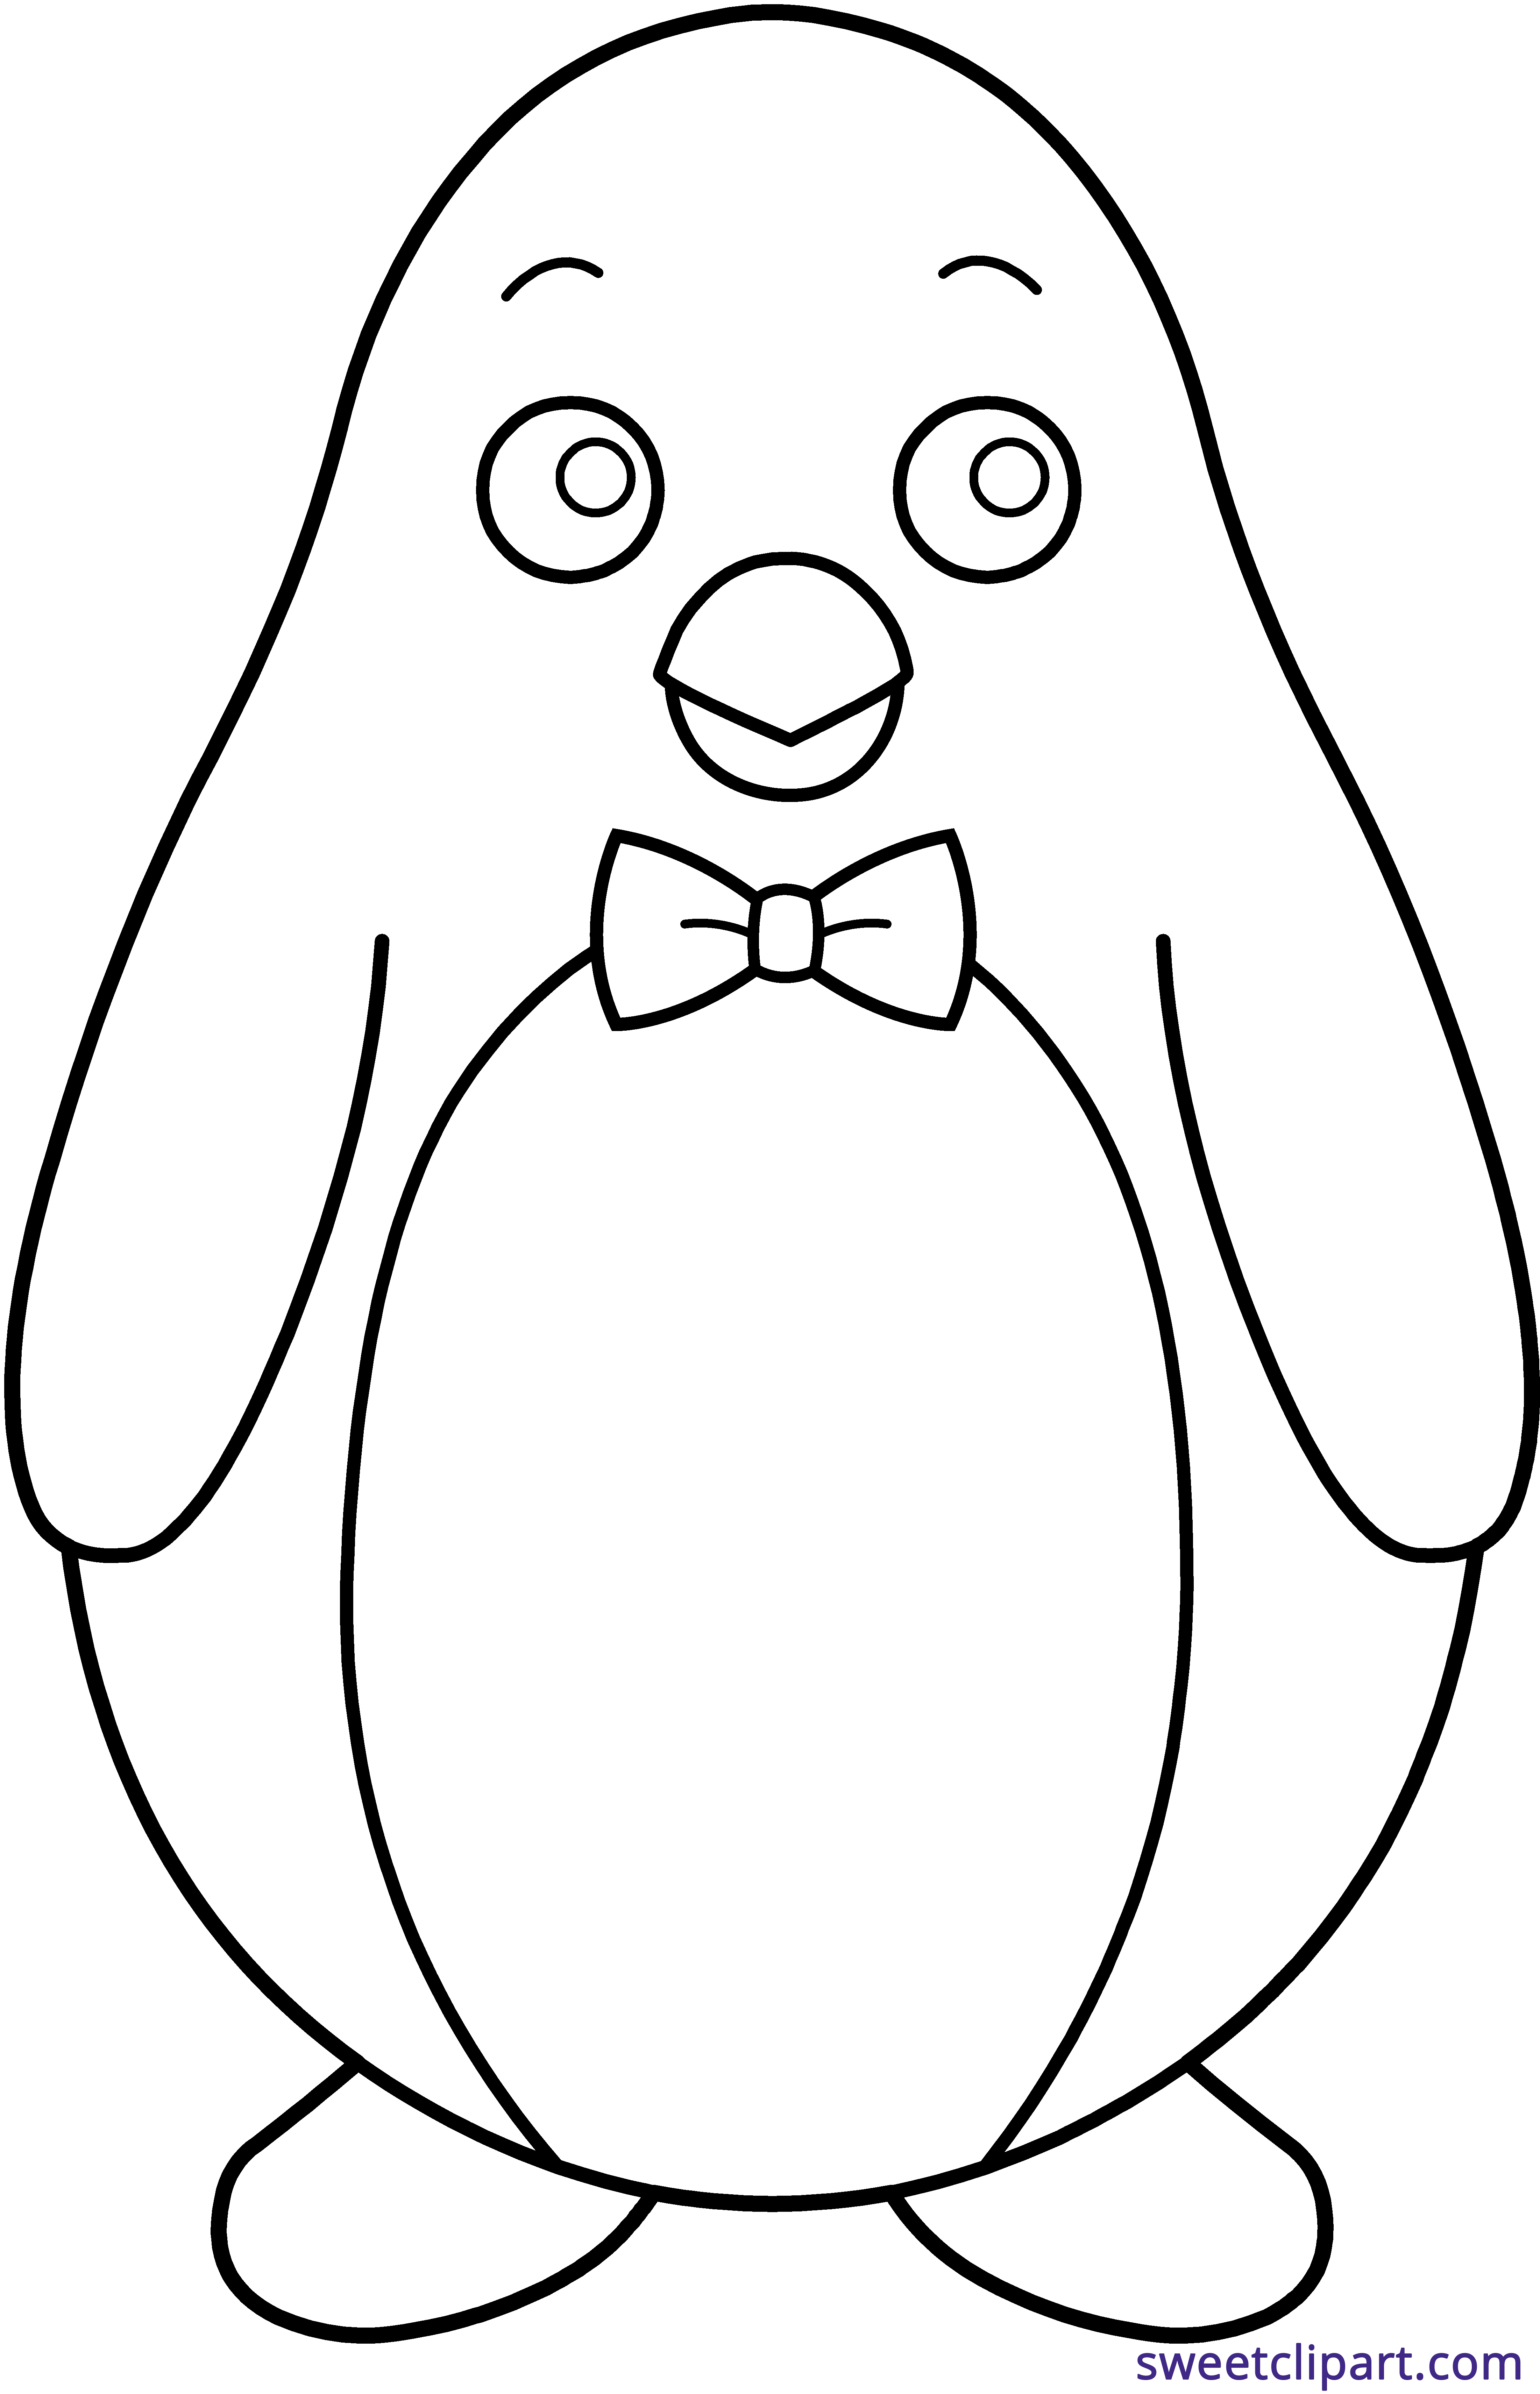 Penguin with book clipart banner black and white stock Penguin Bowtie Line Art Clipart - Sweet Clip Art banner black and white stock